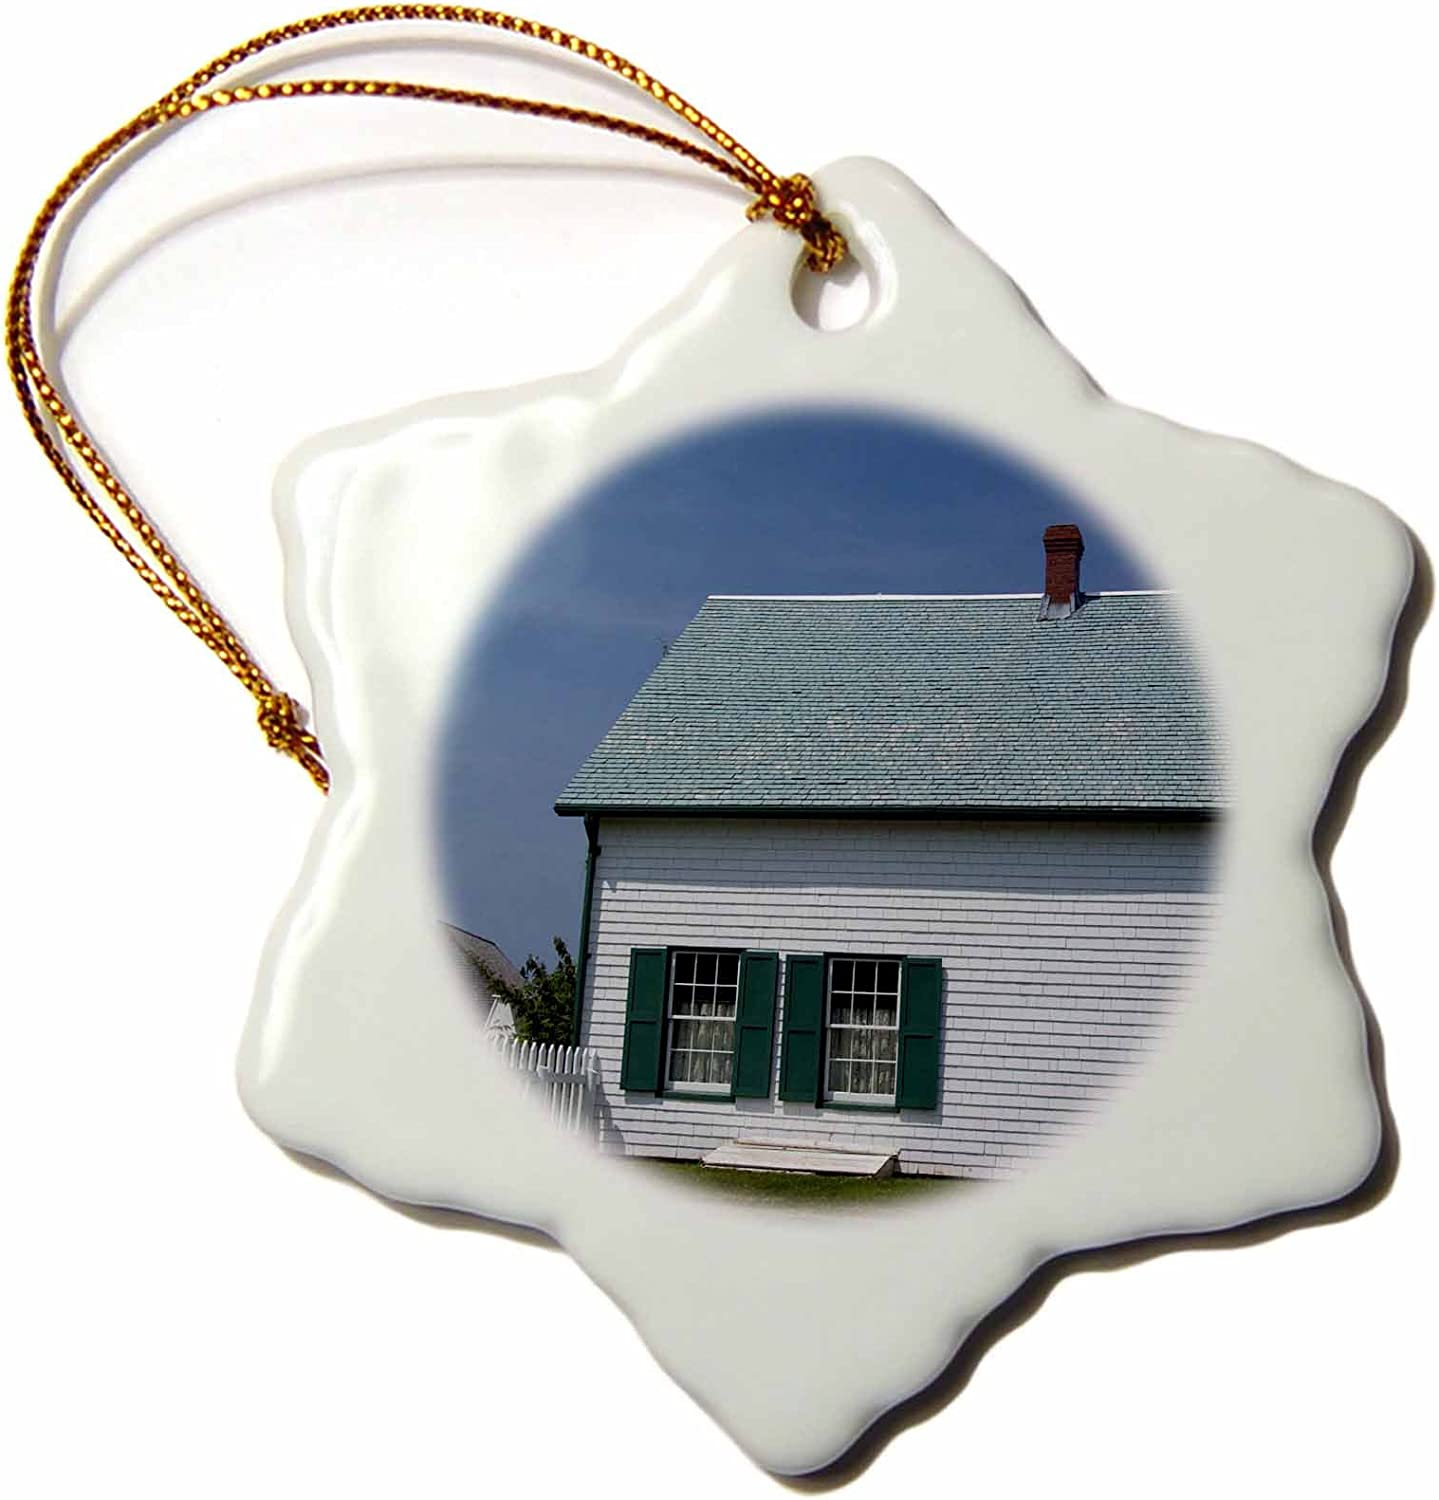 3dRose ORN_74492_1 Prince Edward Island, Anne of Green Gables Home CN09 CMI0158 Cindy Miller Hopkins Snowflake Porcelain Ornament, 3-Inch